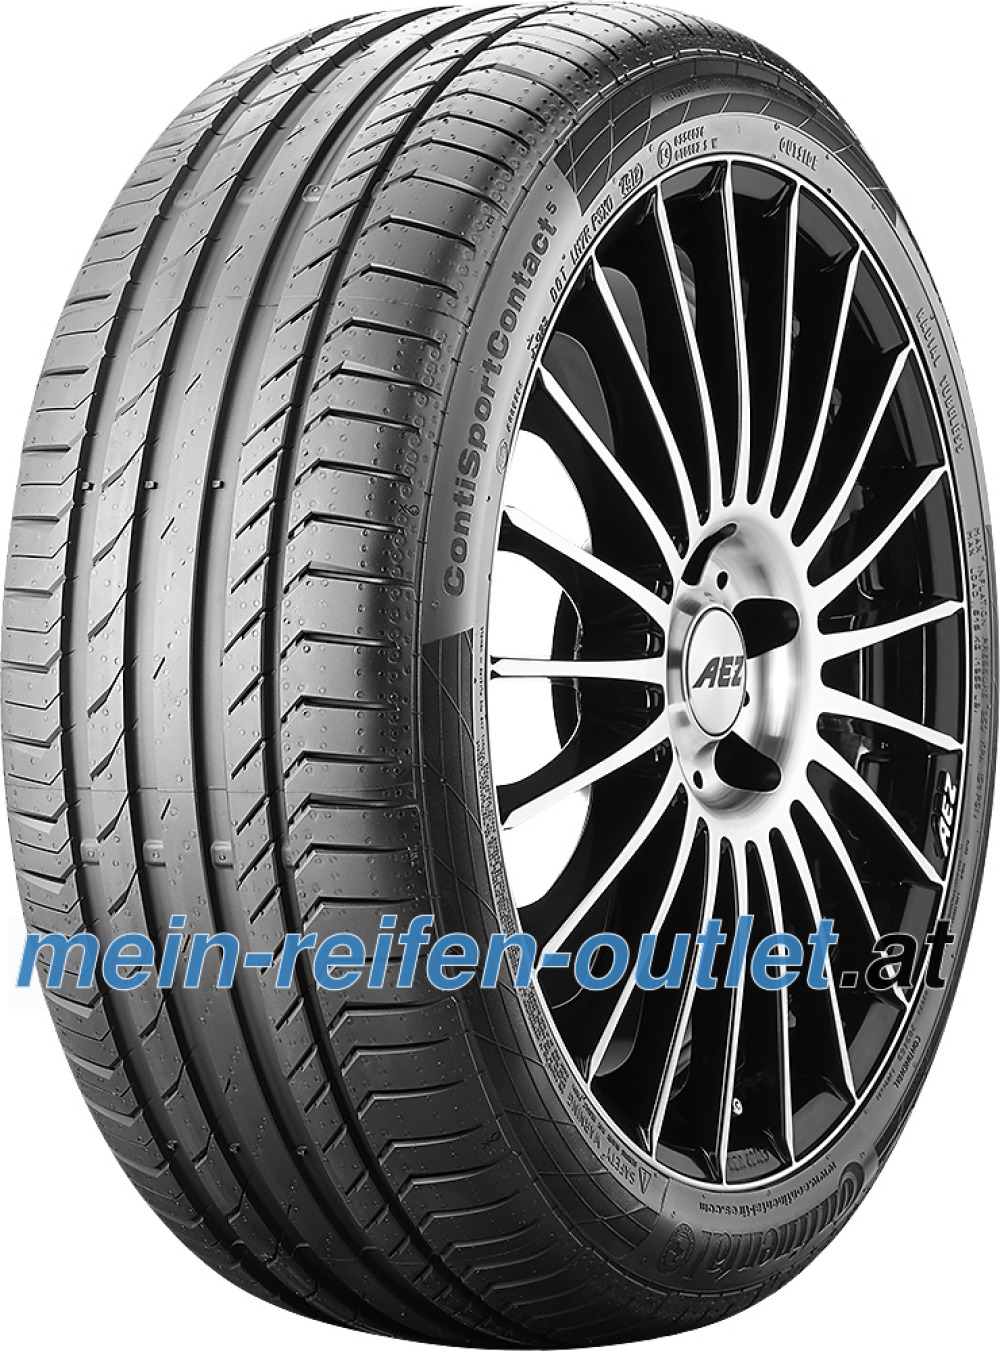 Continental ContiSportContact 5 ( 235/45 R18 94W Conti Seal, mit Felgenrippe )